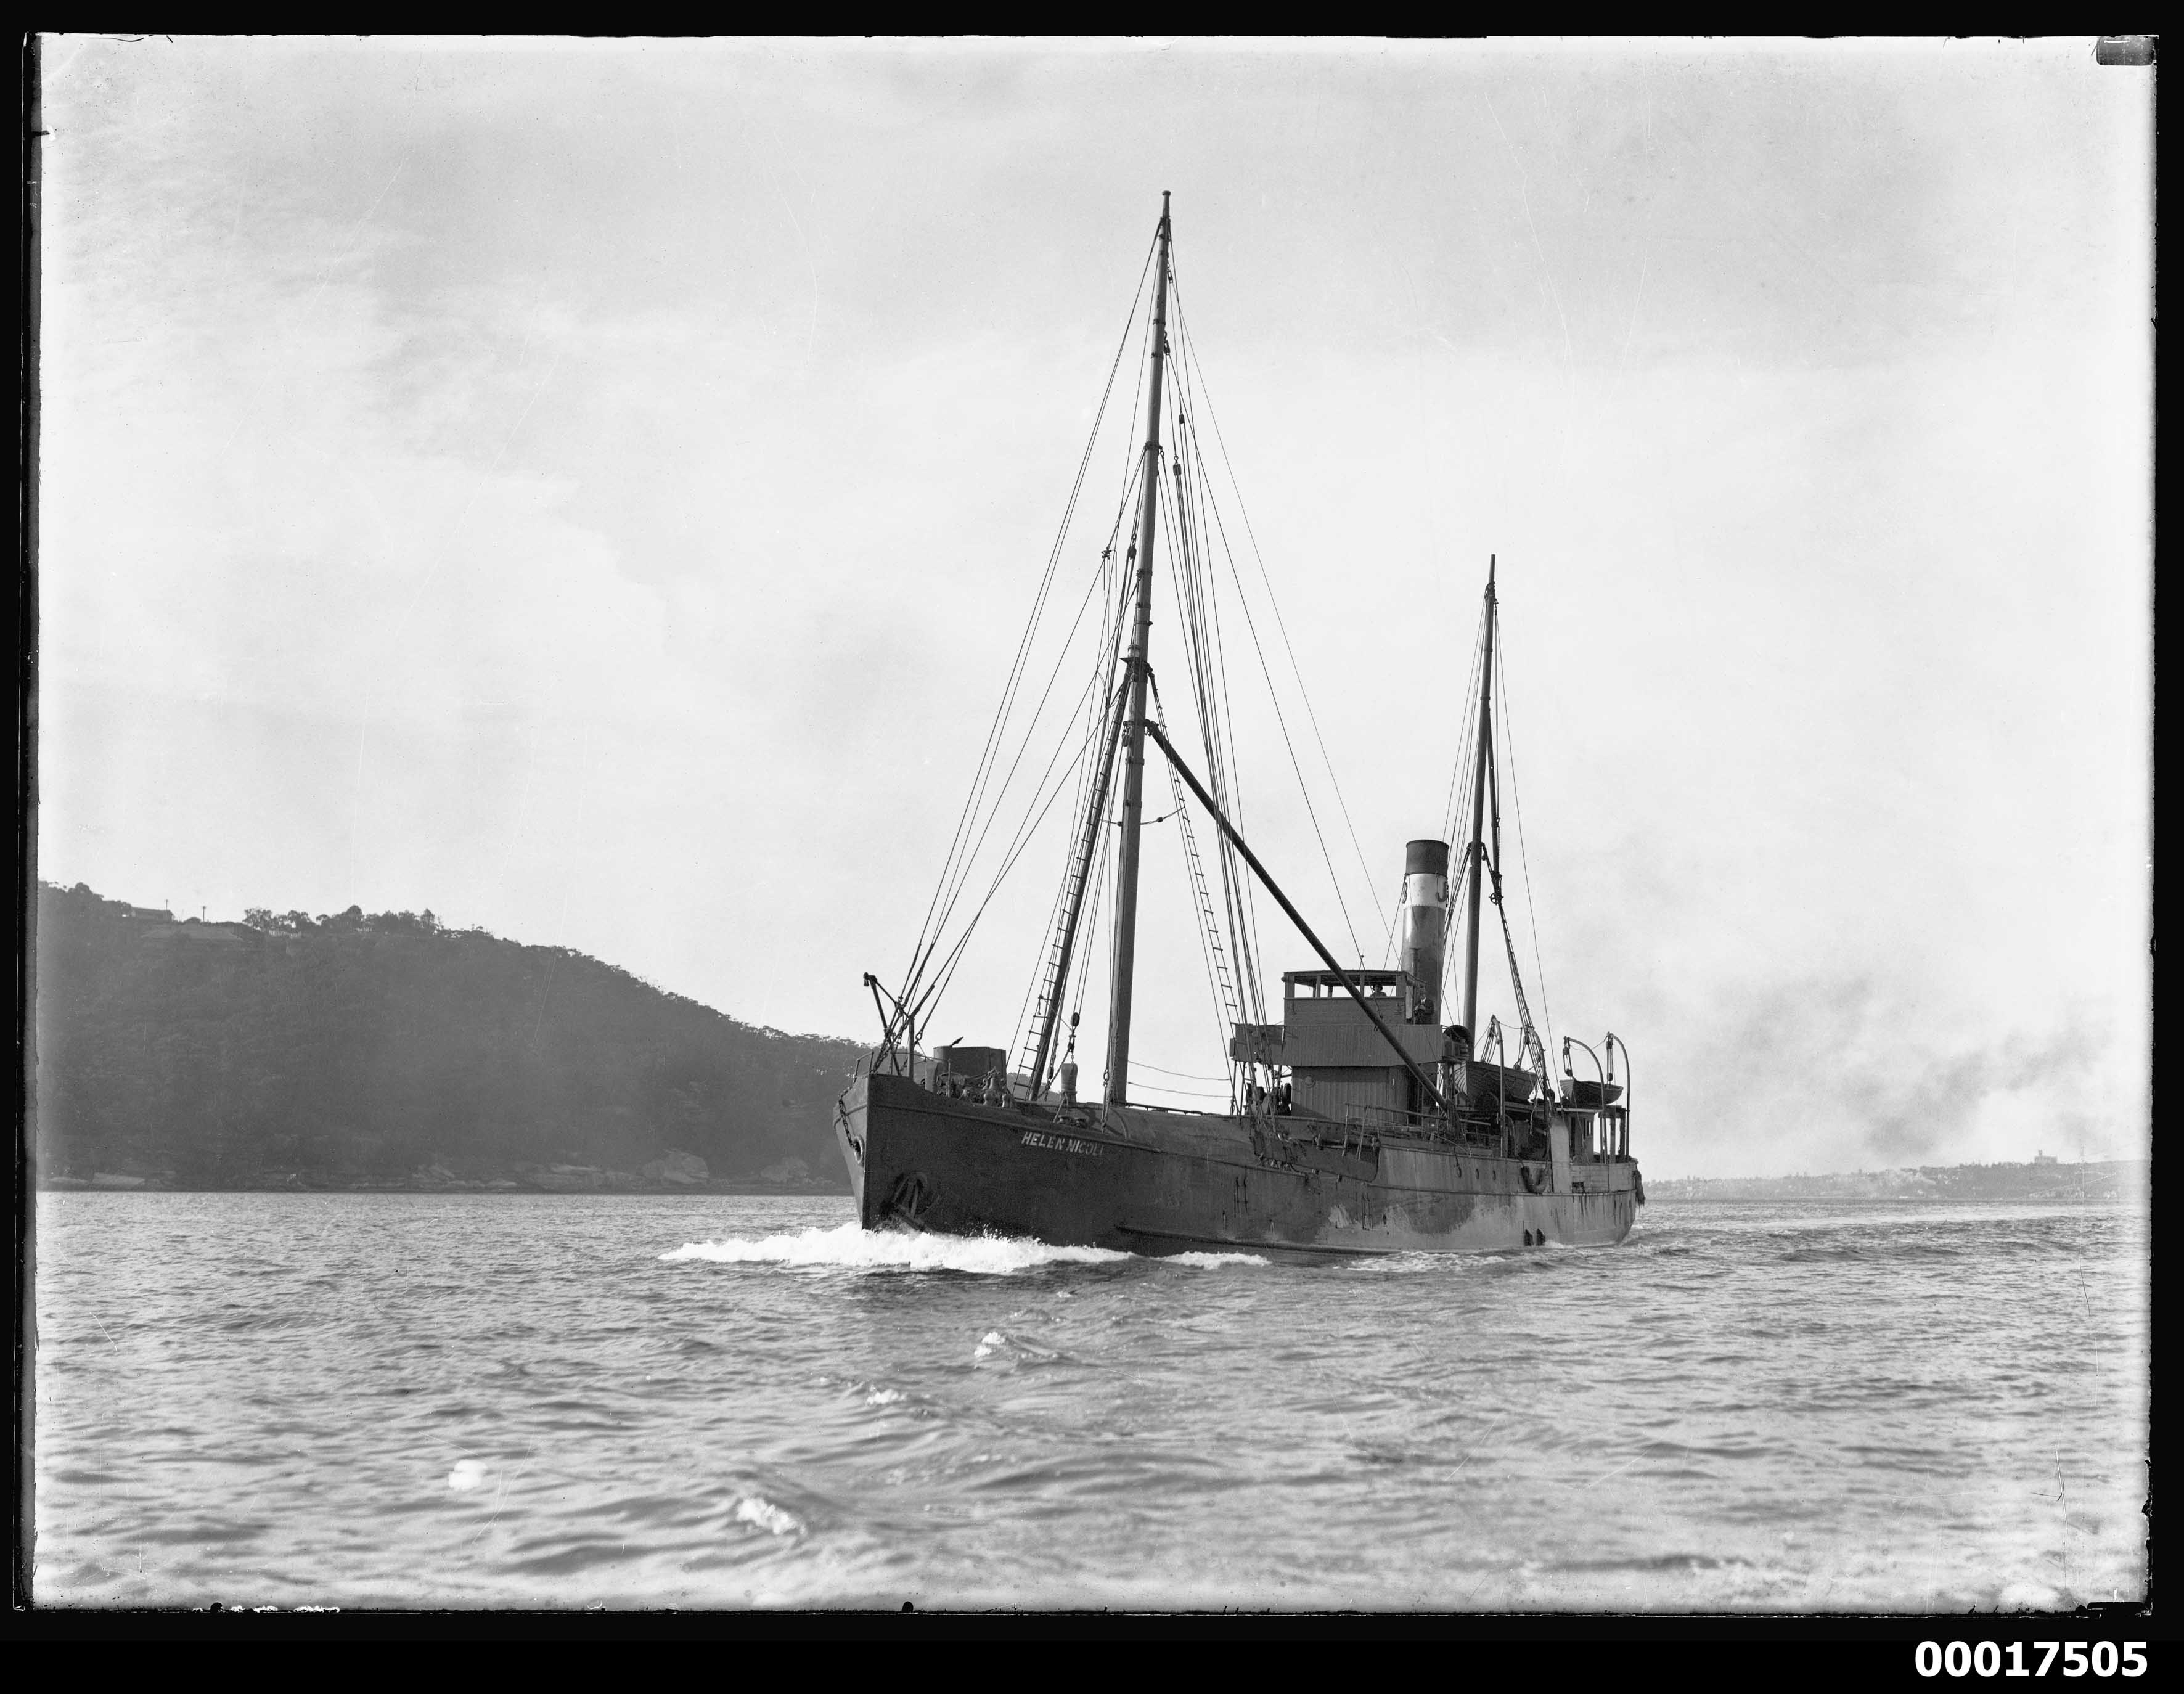 HELEN NICOLL possibly off Bradleys Head and Clifton Gardens, 1900-1932